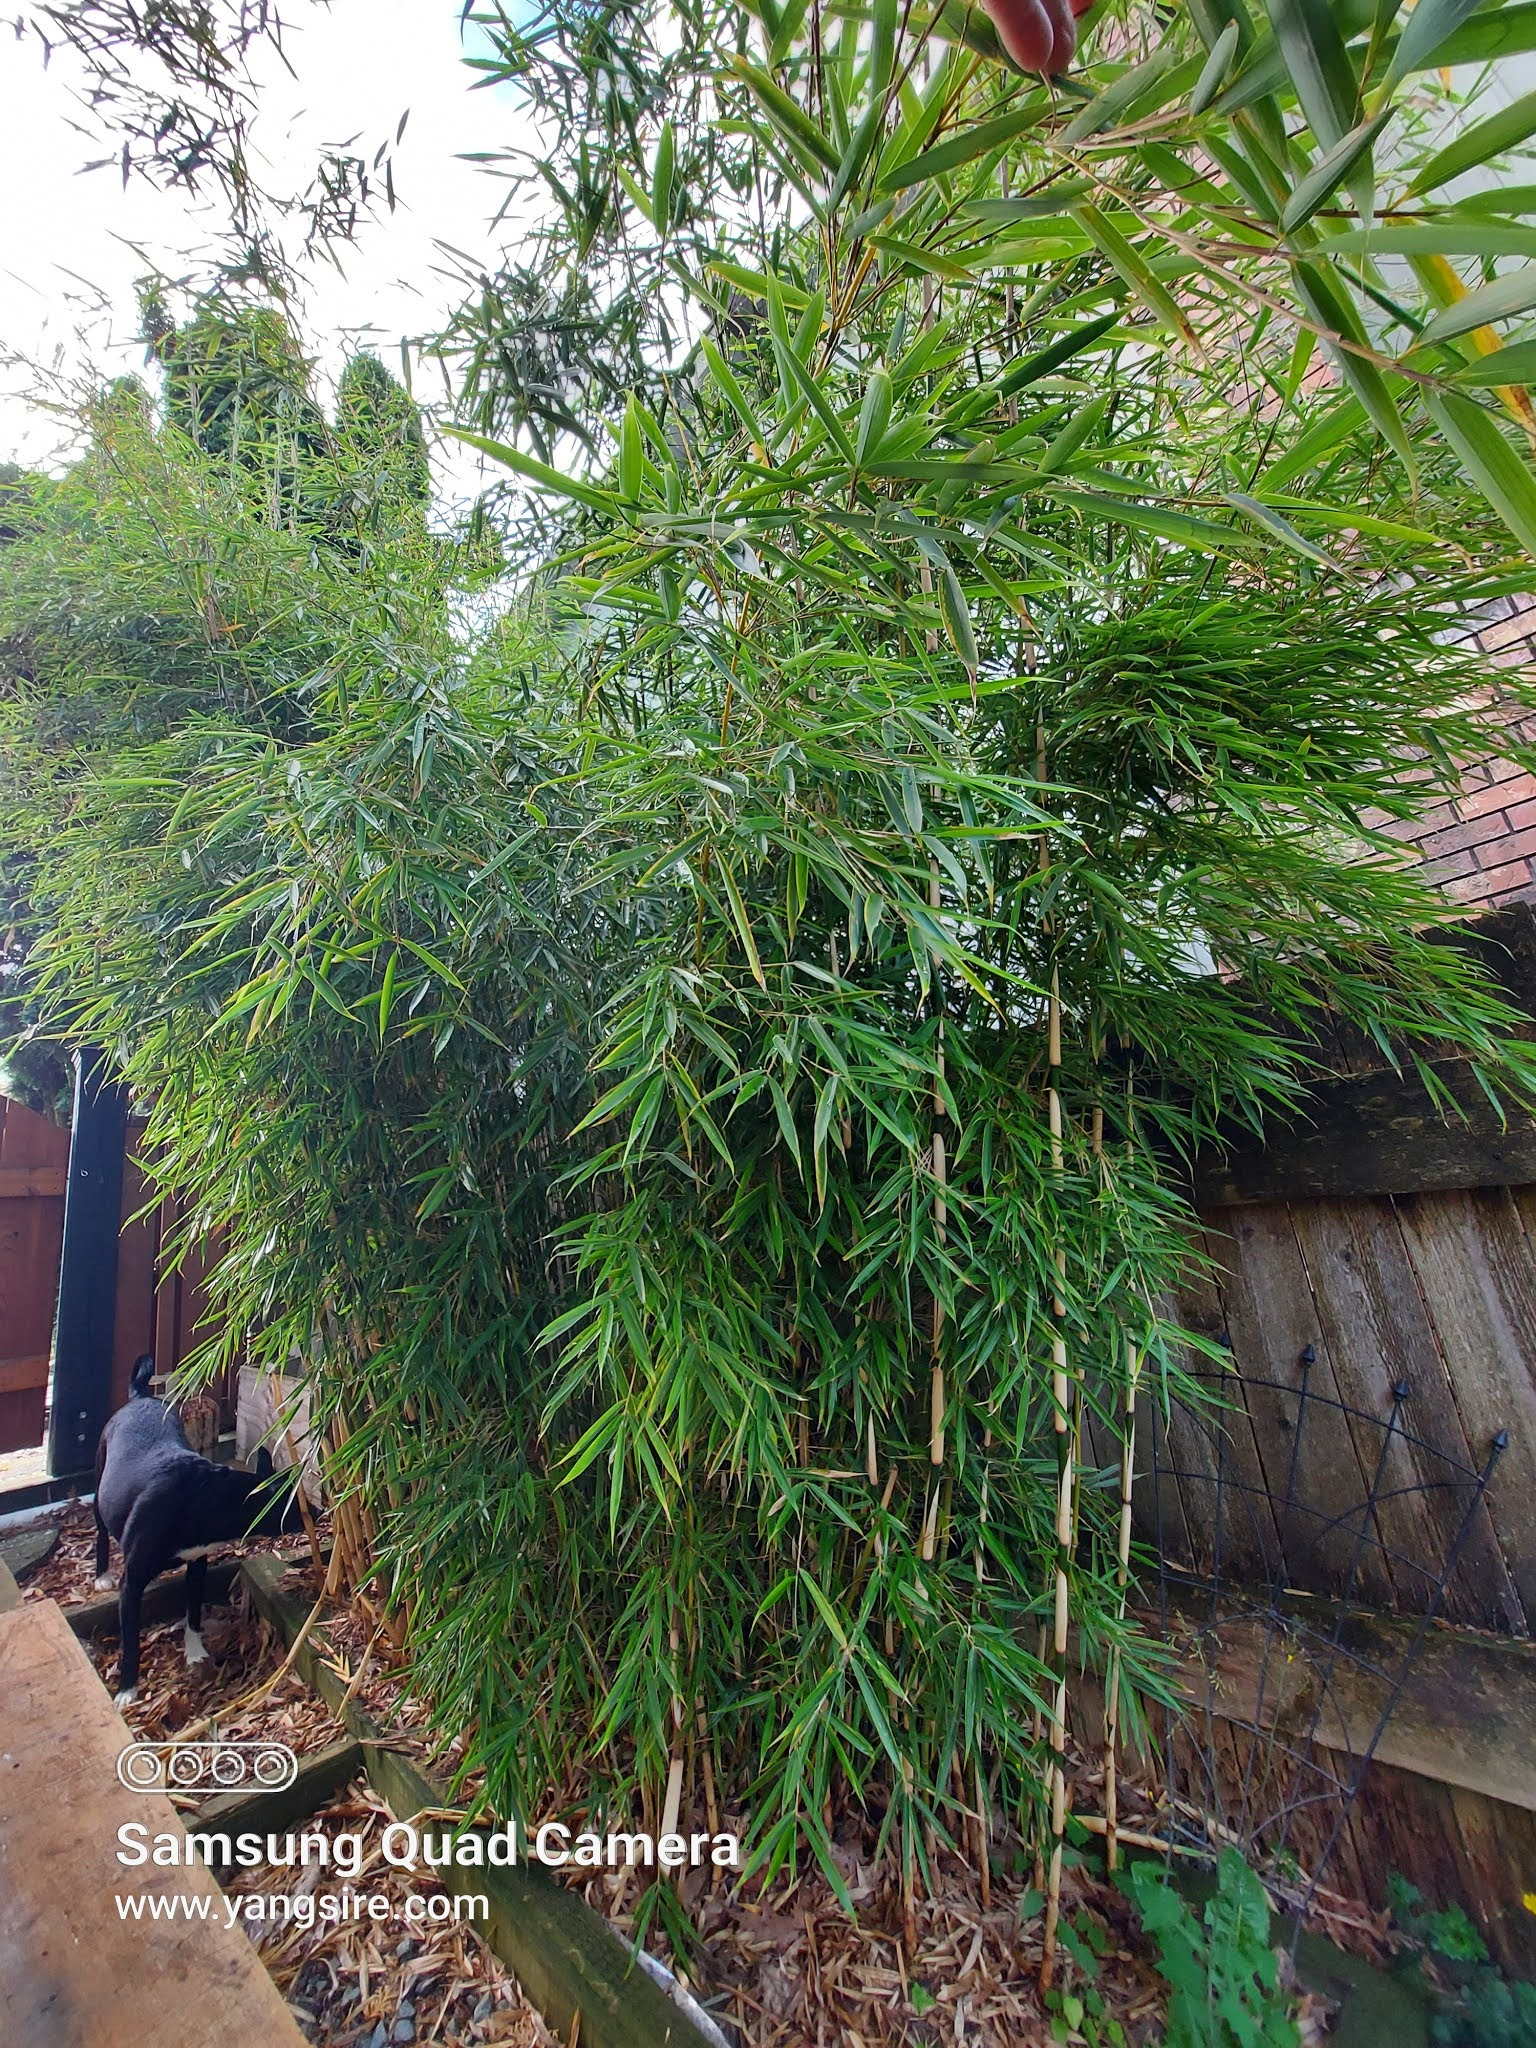 Growing bamboo in your property near neighbors house